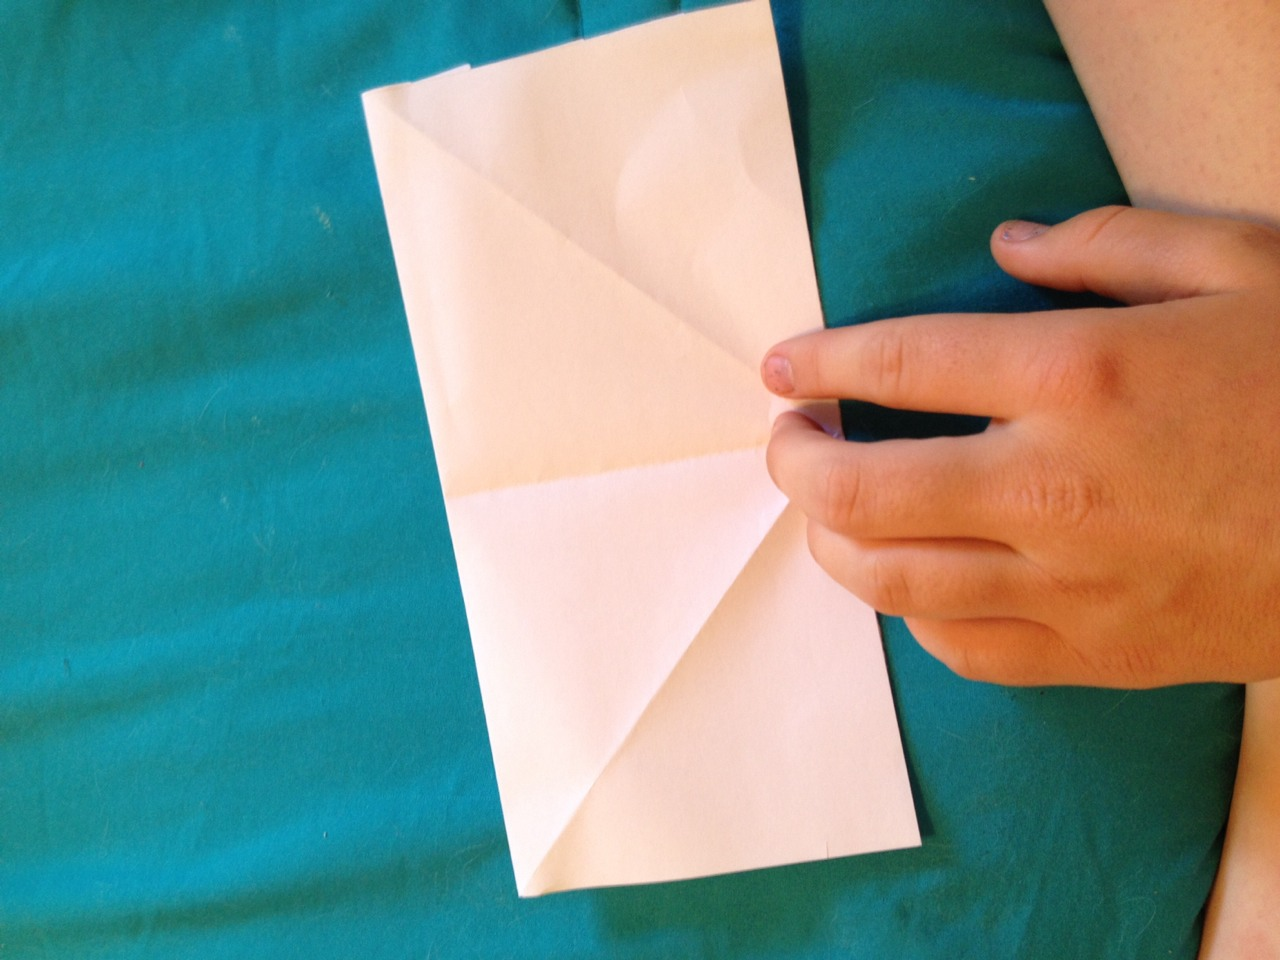 Then flip paper over and fold in half again